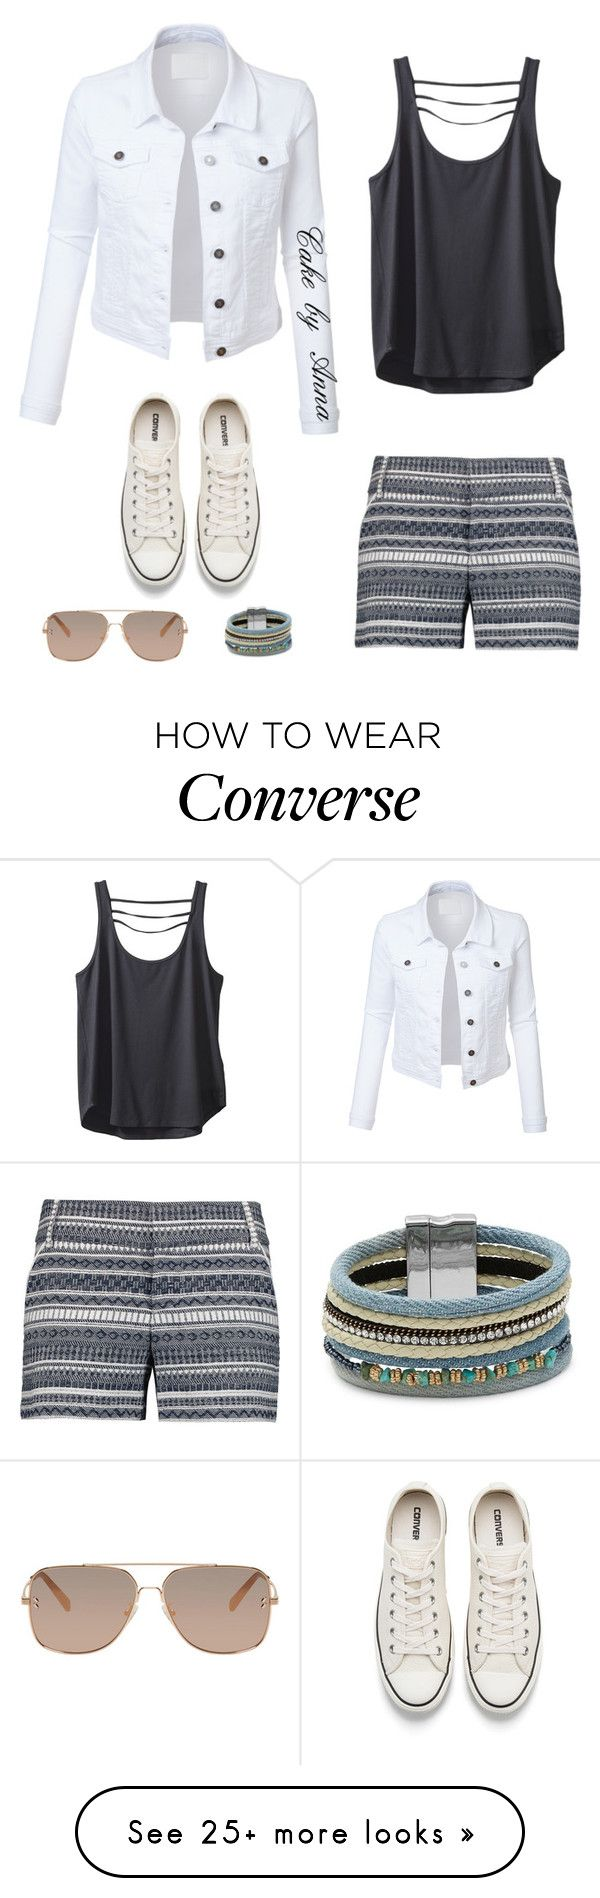 """""""Cake by anna"""" by cakebyanna on Polyvore featuring LE3NO, Converse, Alice + Olivia, Kavu, Design Lab and STELLA McCARTNEY"""